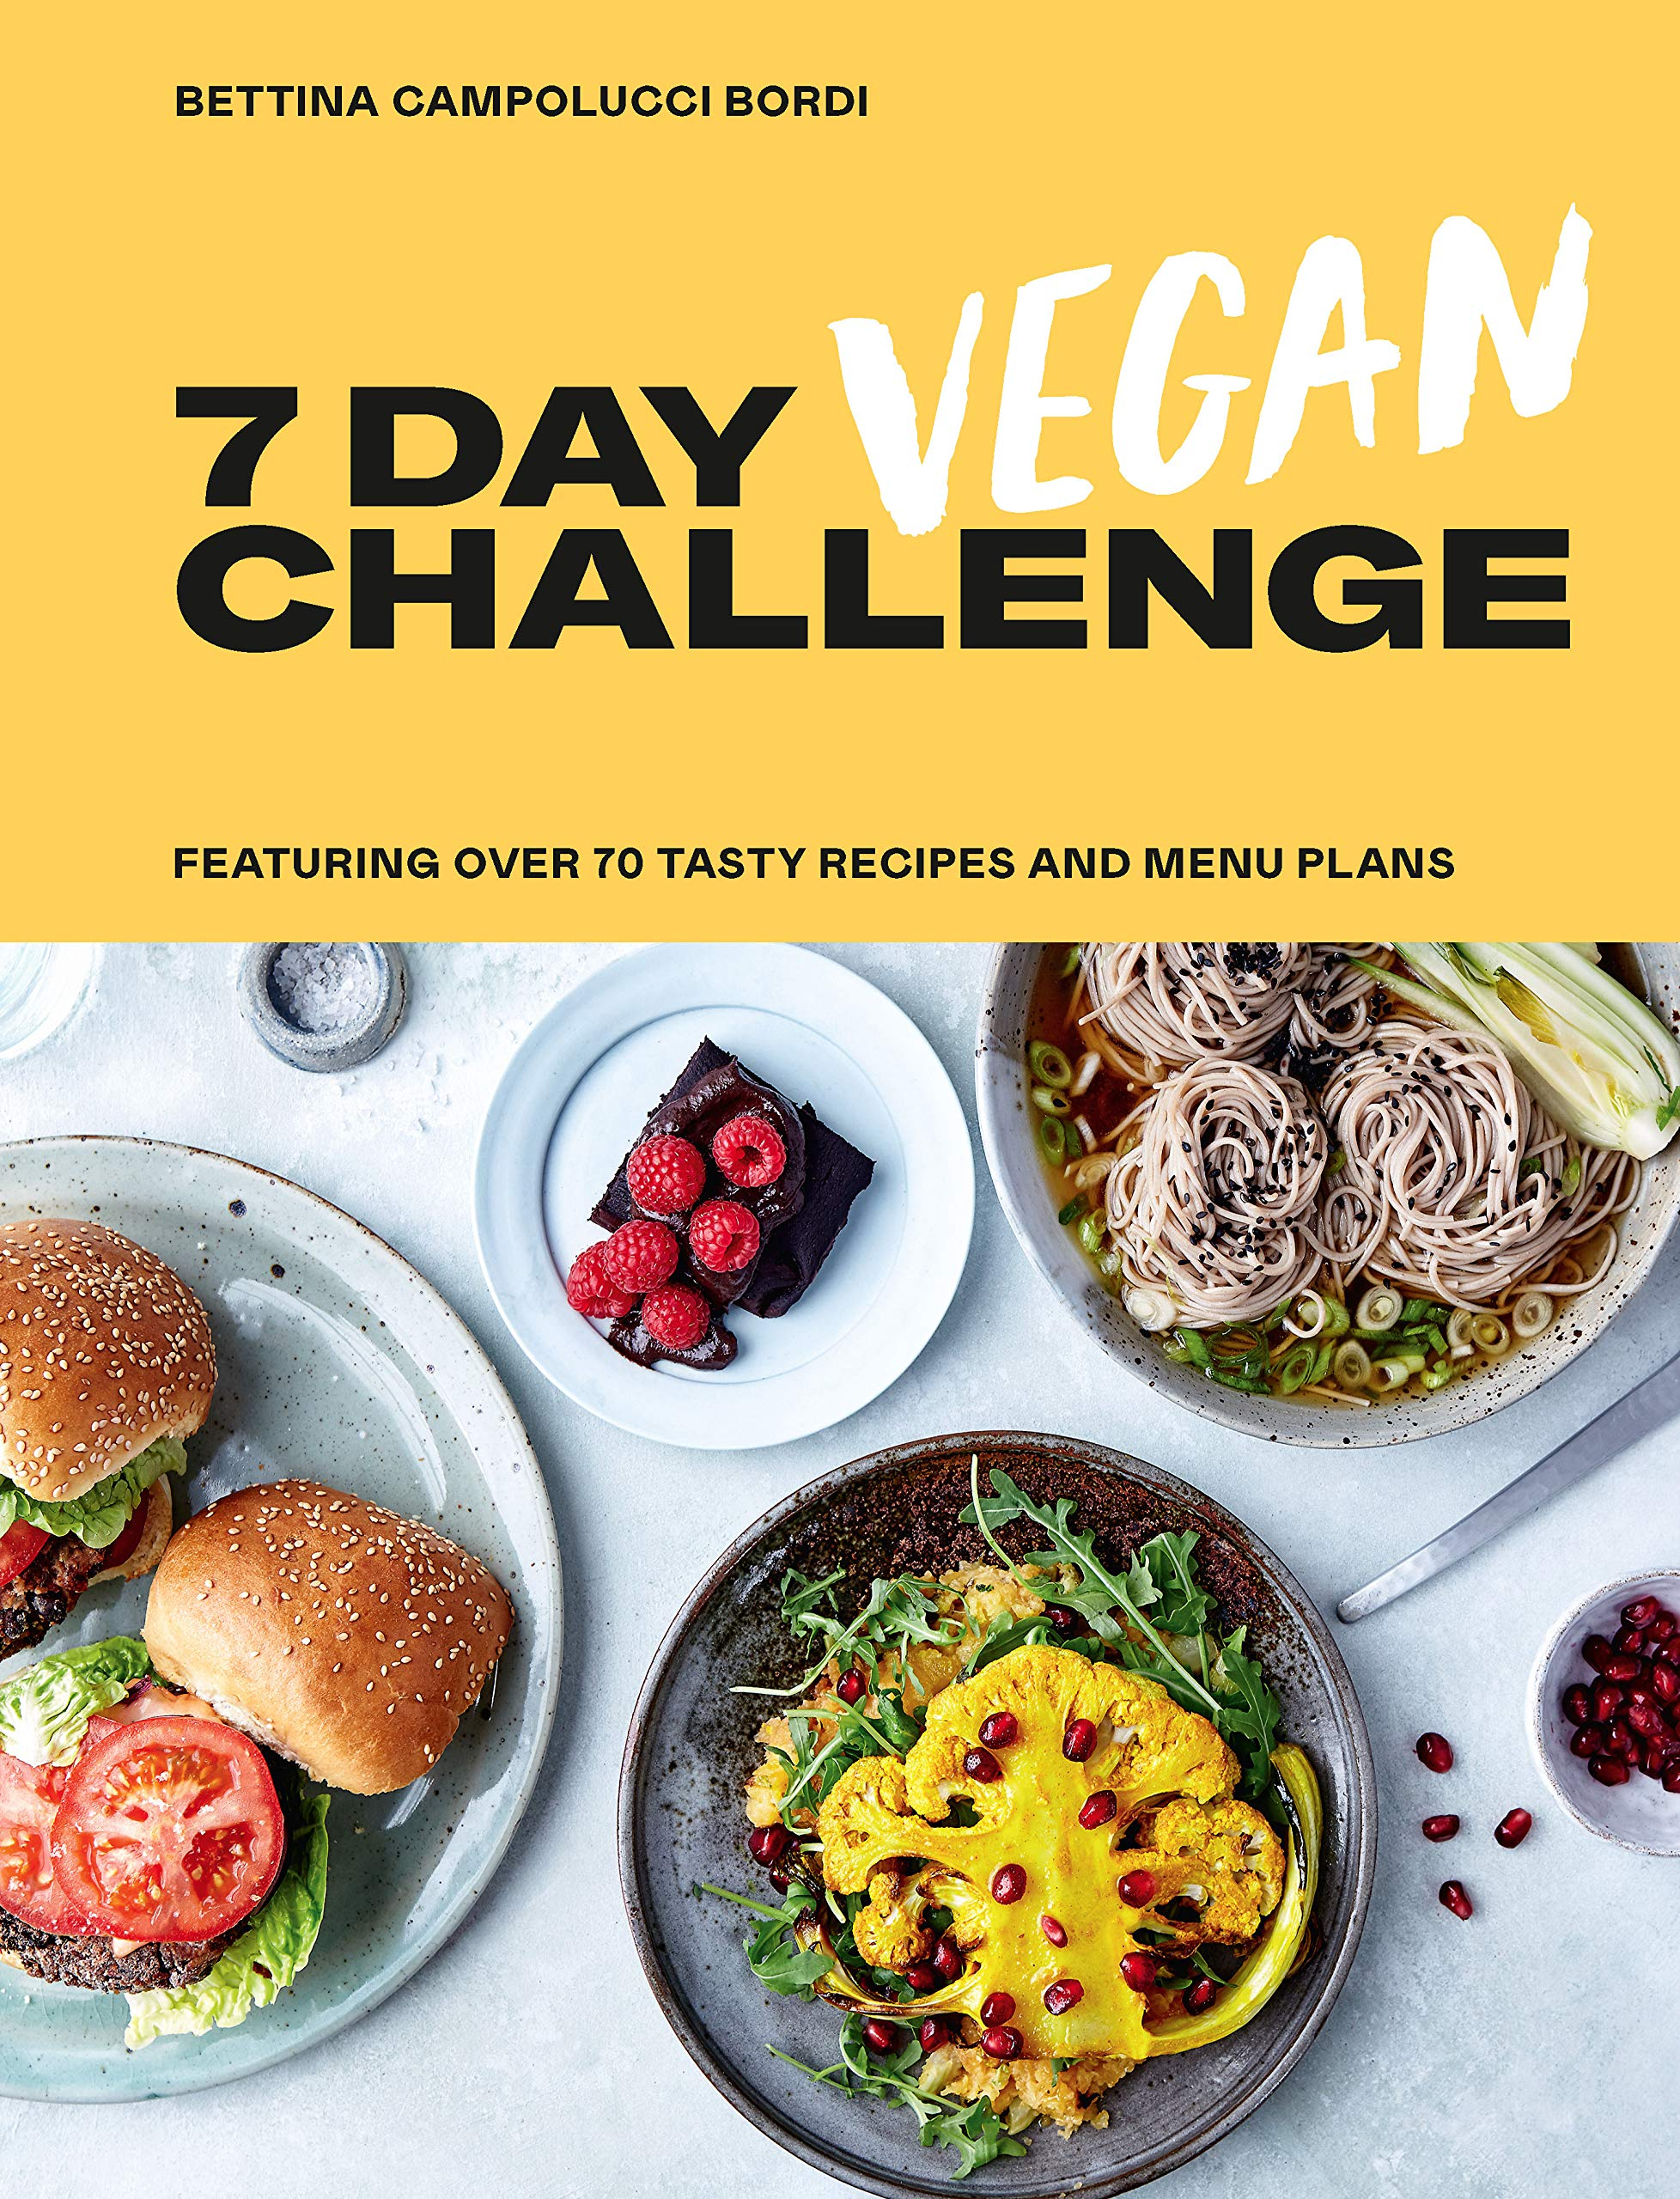 7 Day Vegan Challenge Book Cover